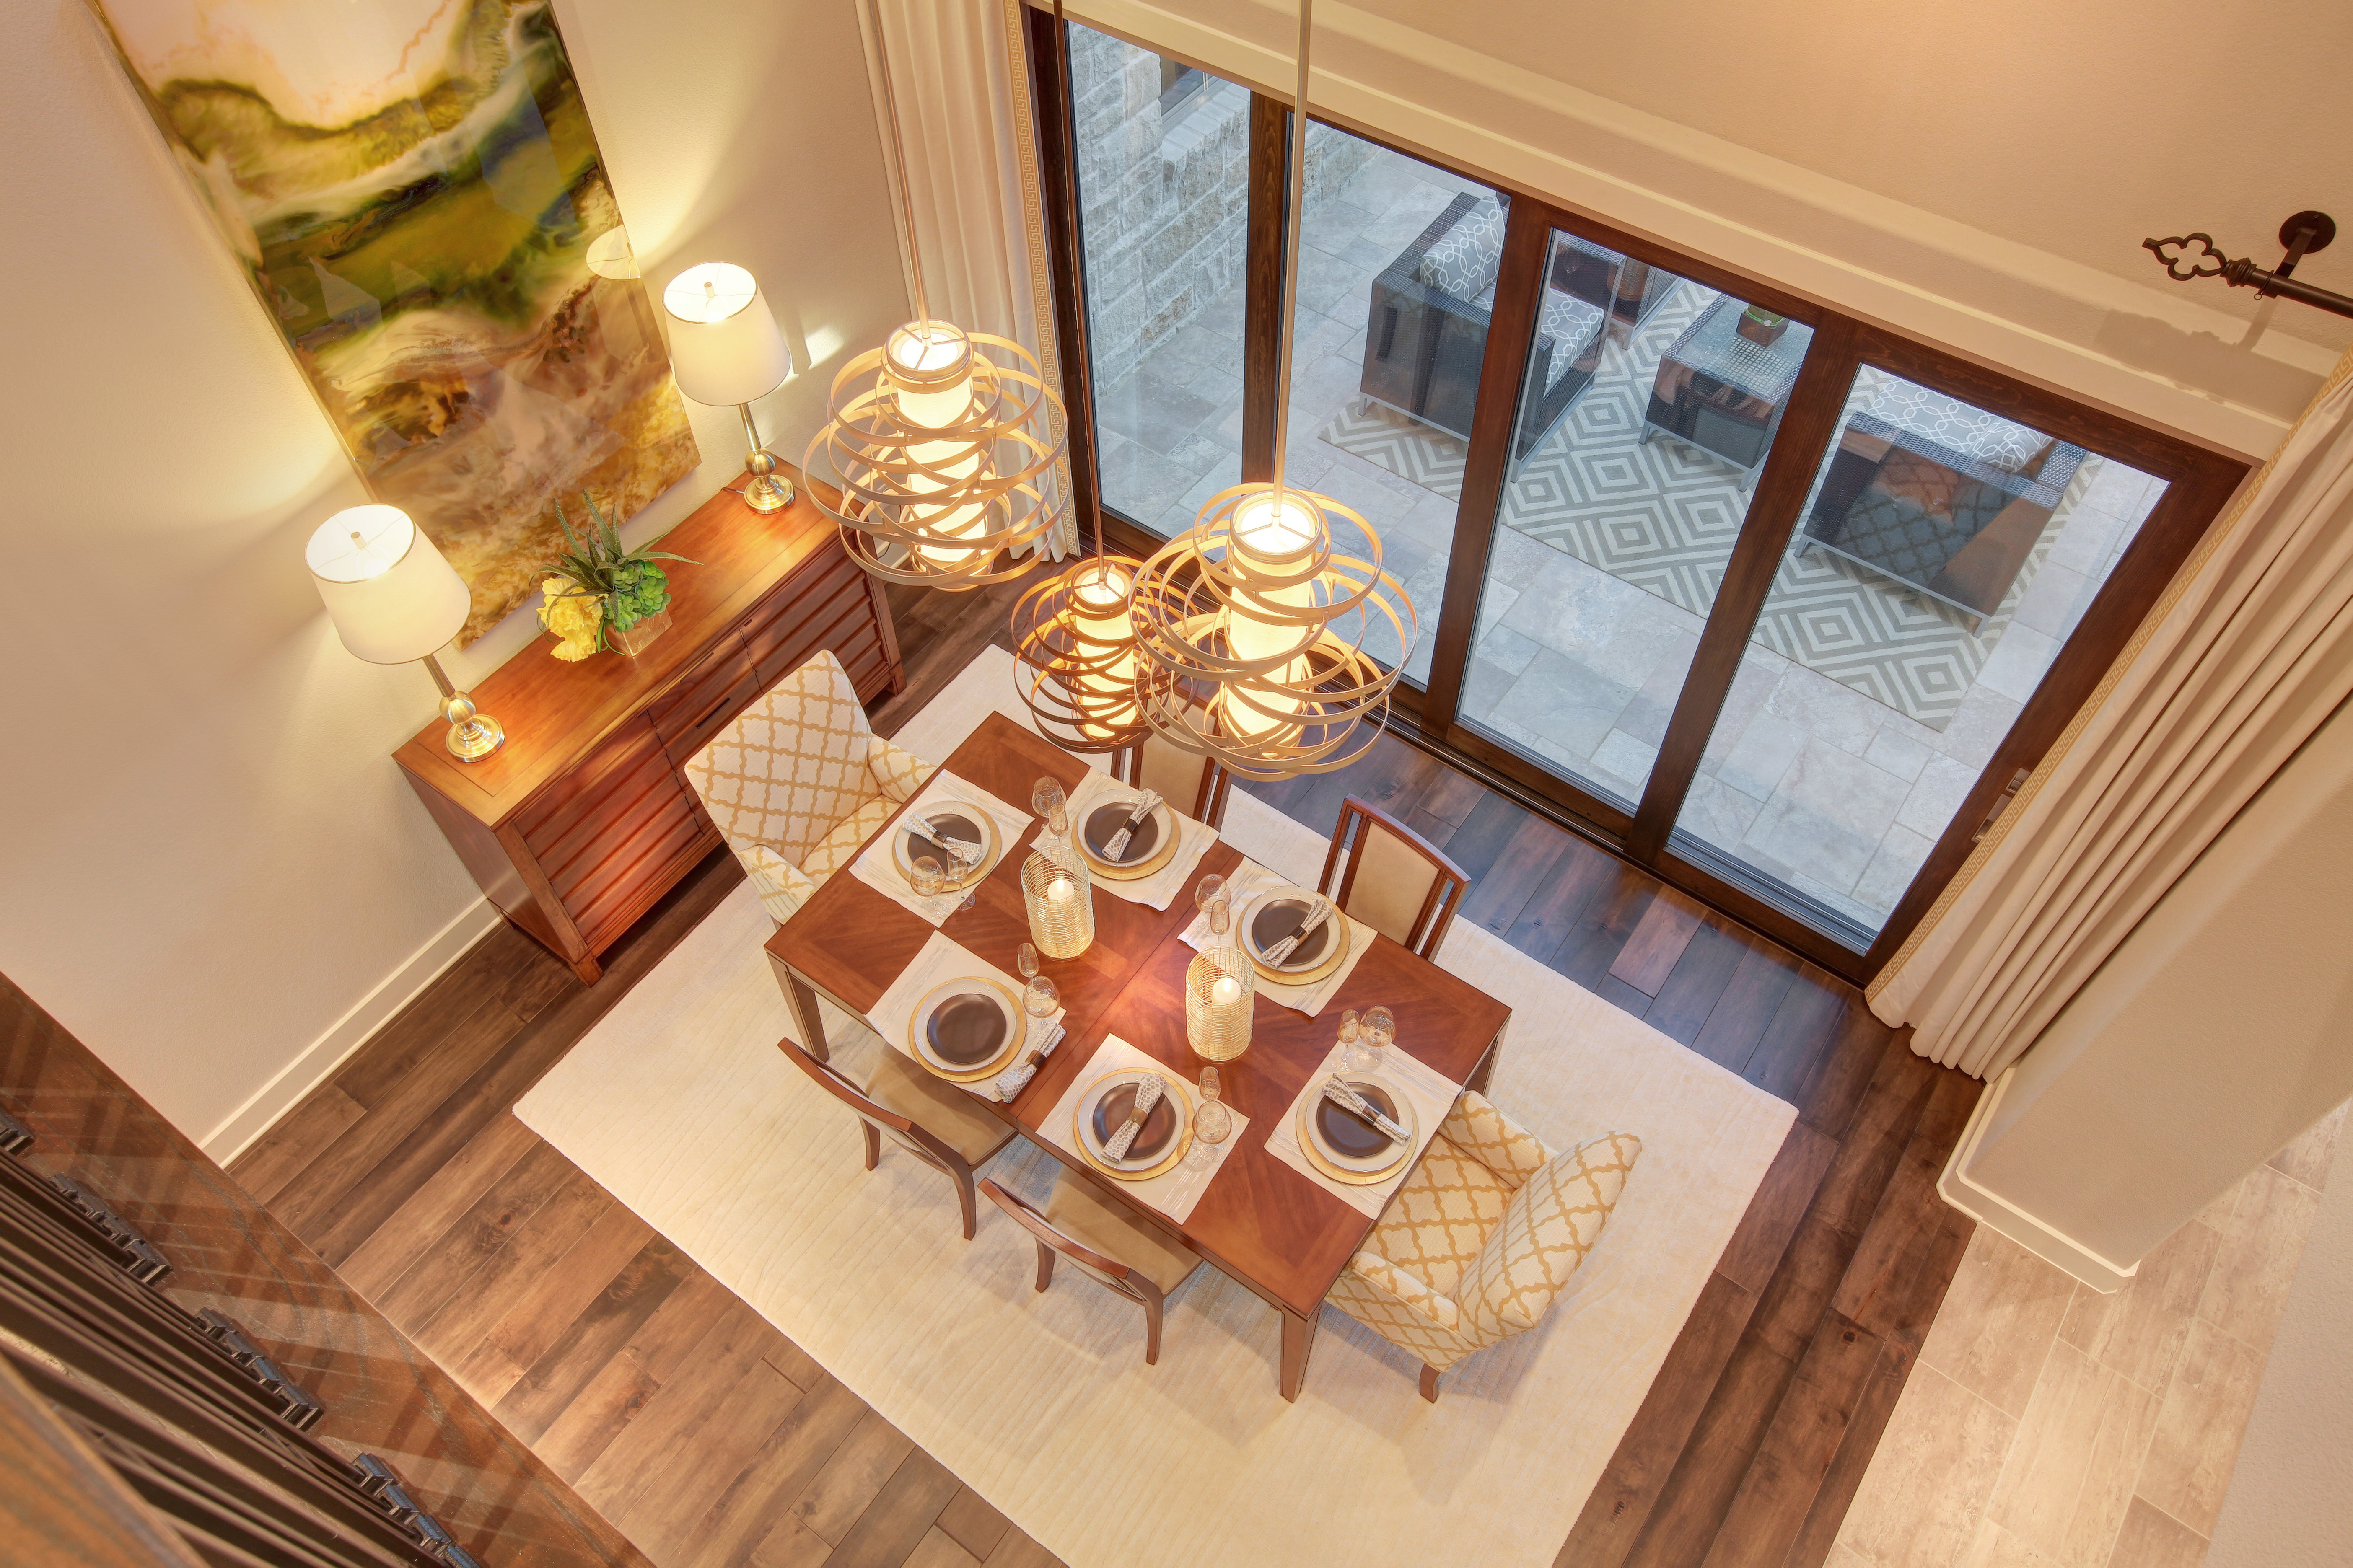 drees custom homes is a finalist for star awards at home lynmar dining room